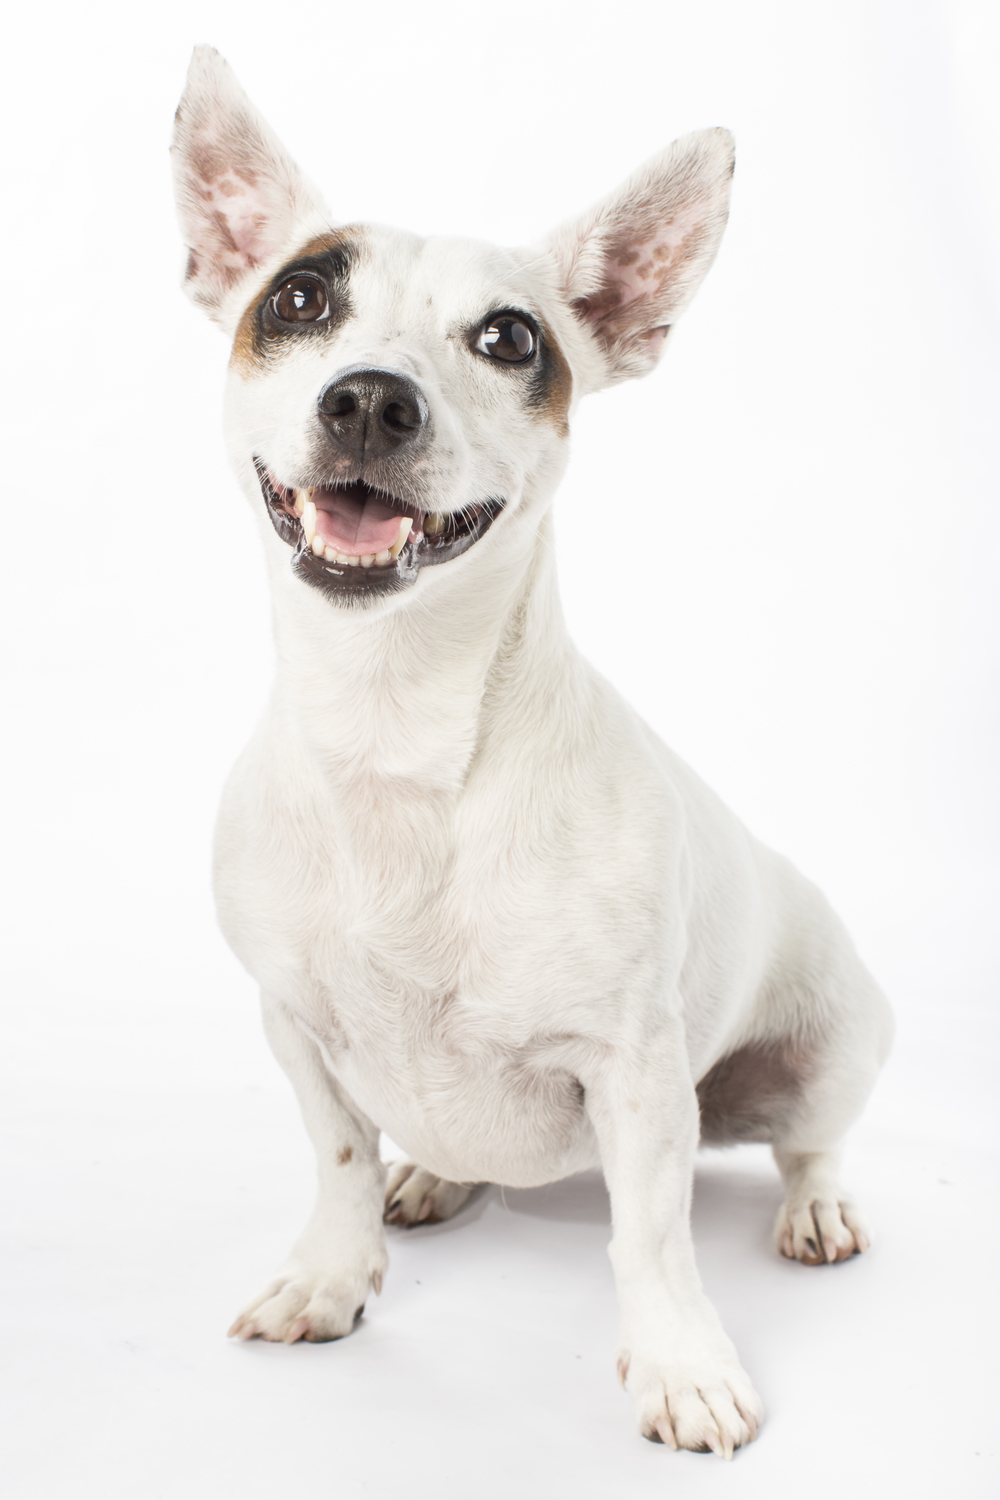 43 Tan eye patch white dog sitting studio pet photography session on white.jpg